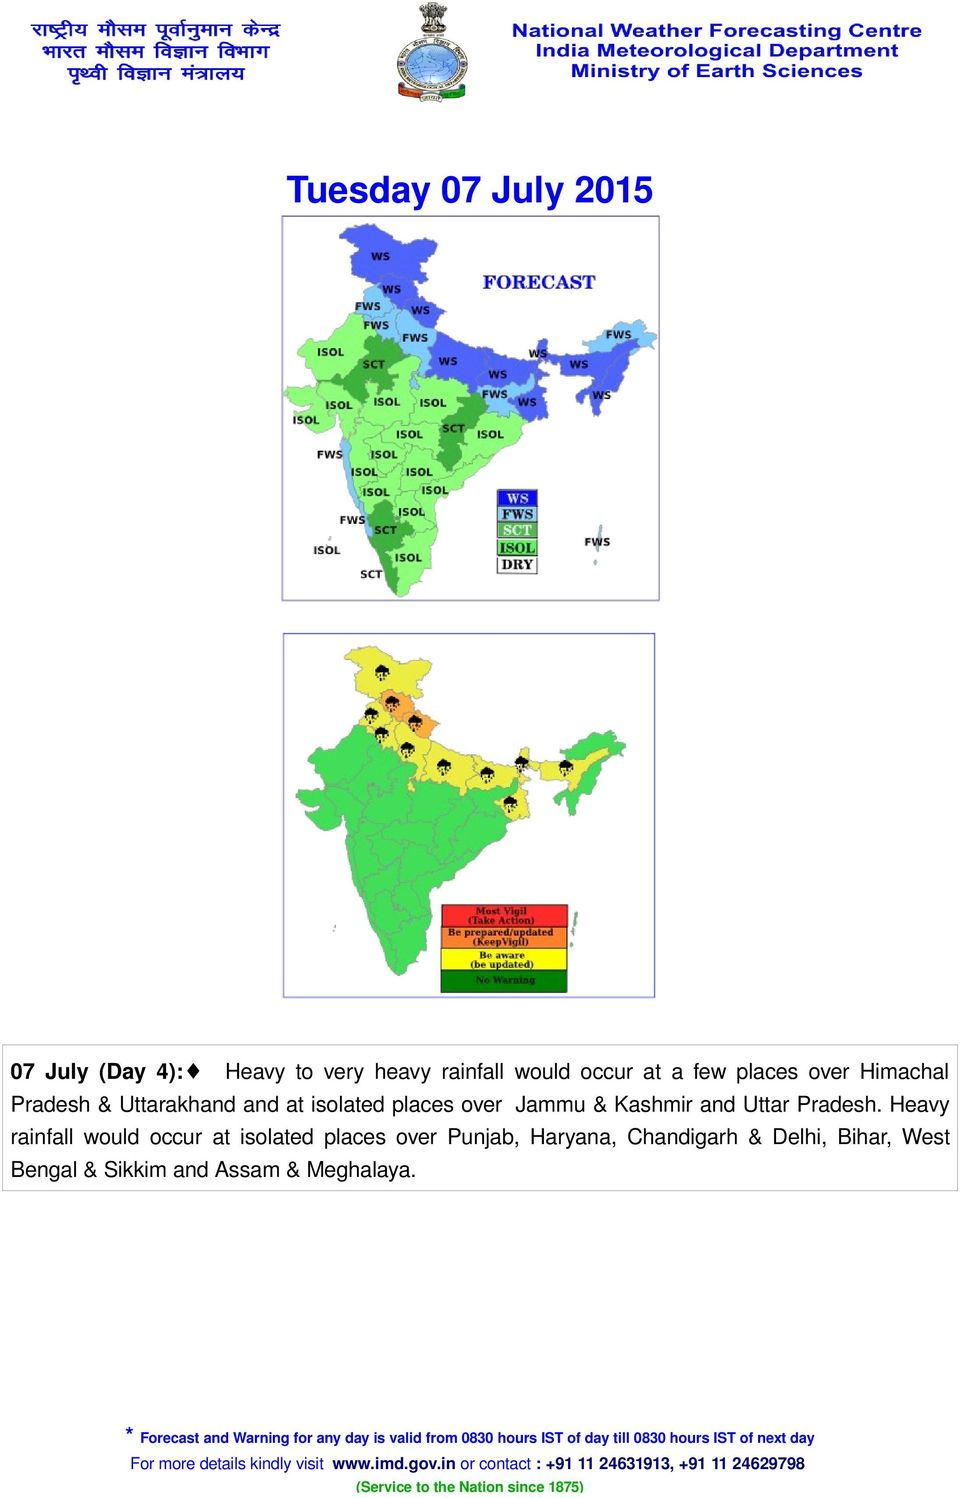 Heavy rainfall would occur at isolated places over Punjab, Haryana, Chandigarh & Delhi, Bihar, West